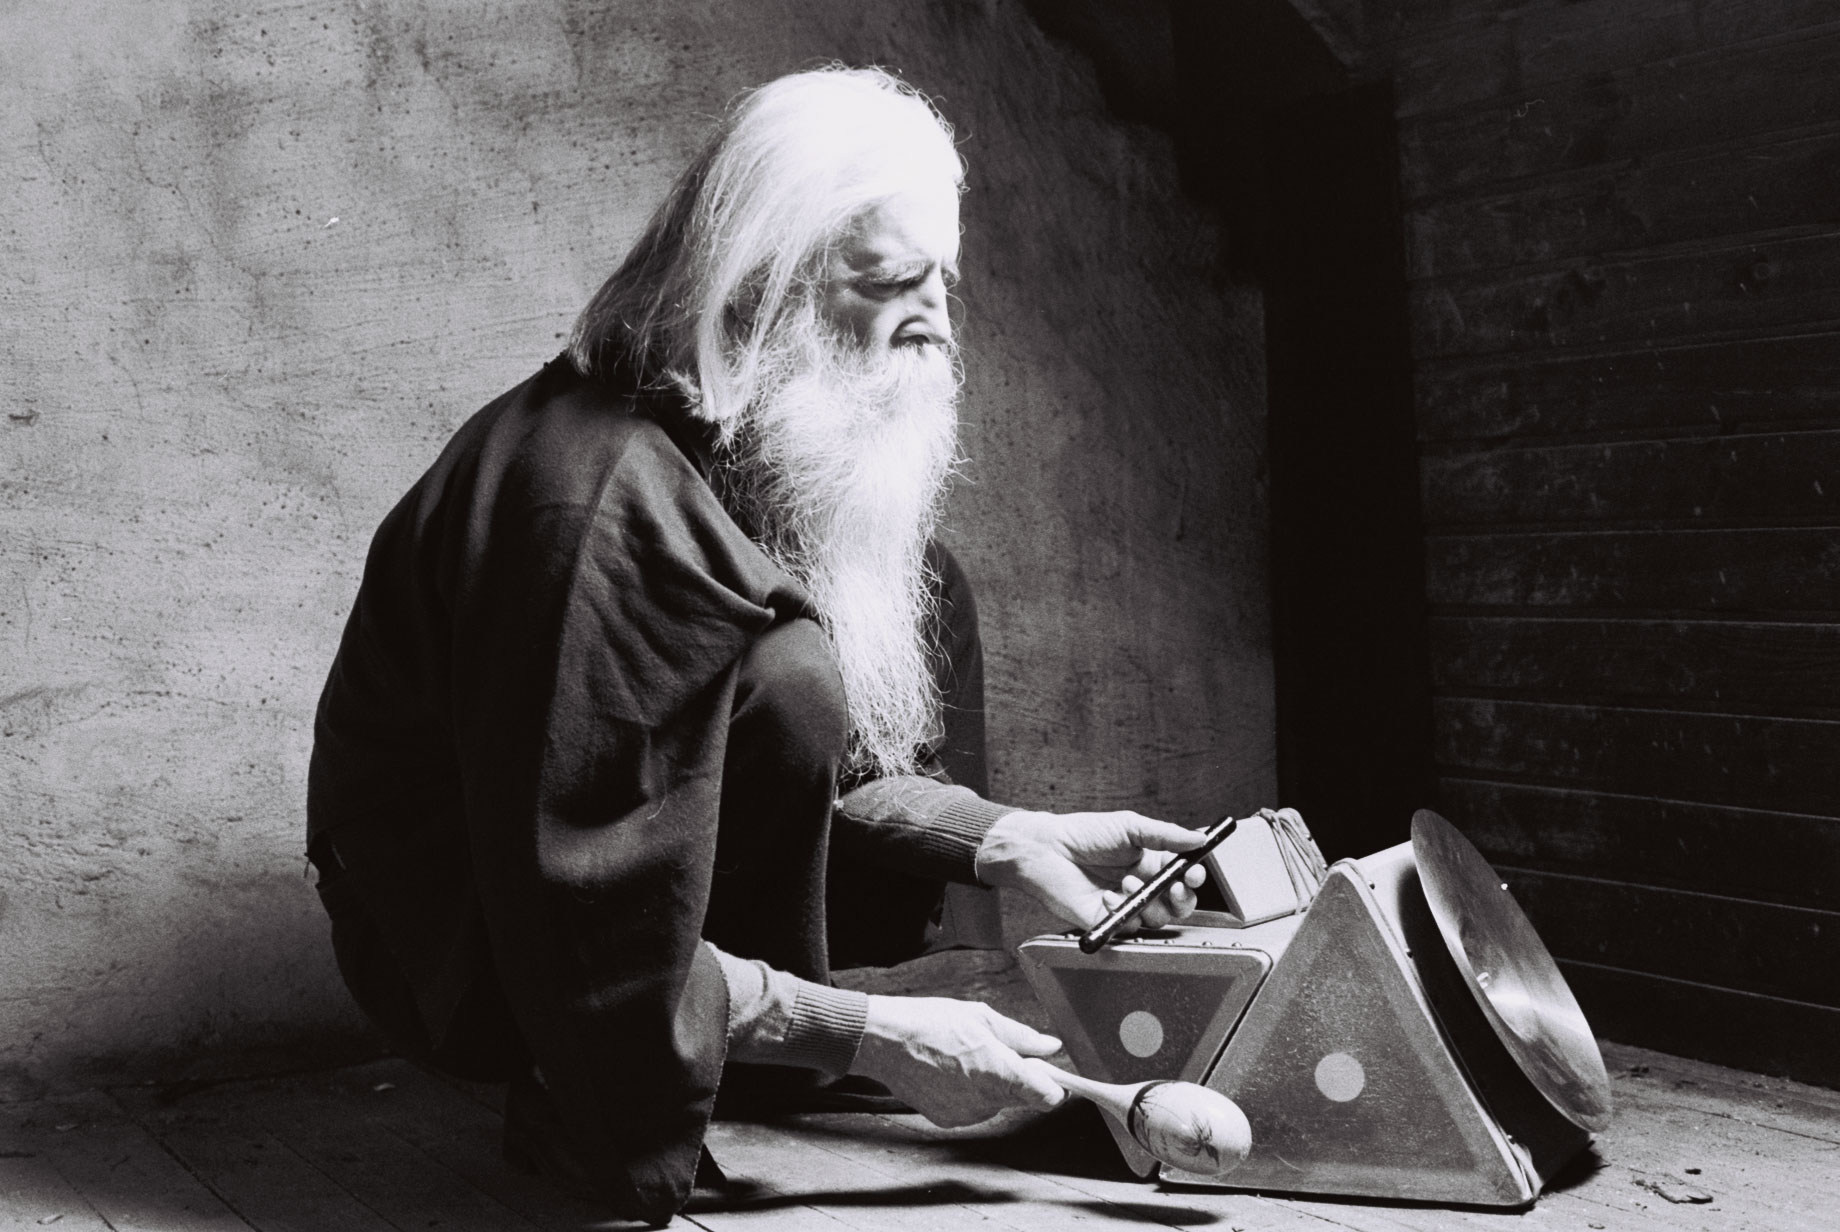 Moondog in Germany, circa 1980. Photo by Stefan Lakatos, courtesy Hark Pictures.